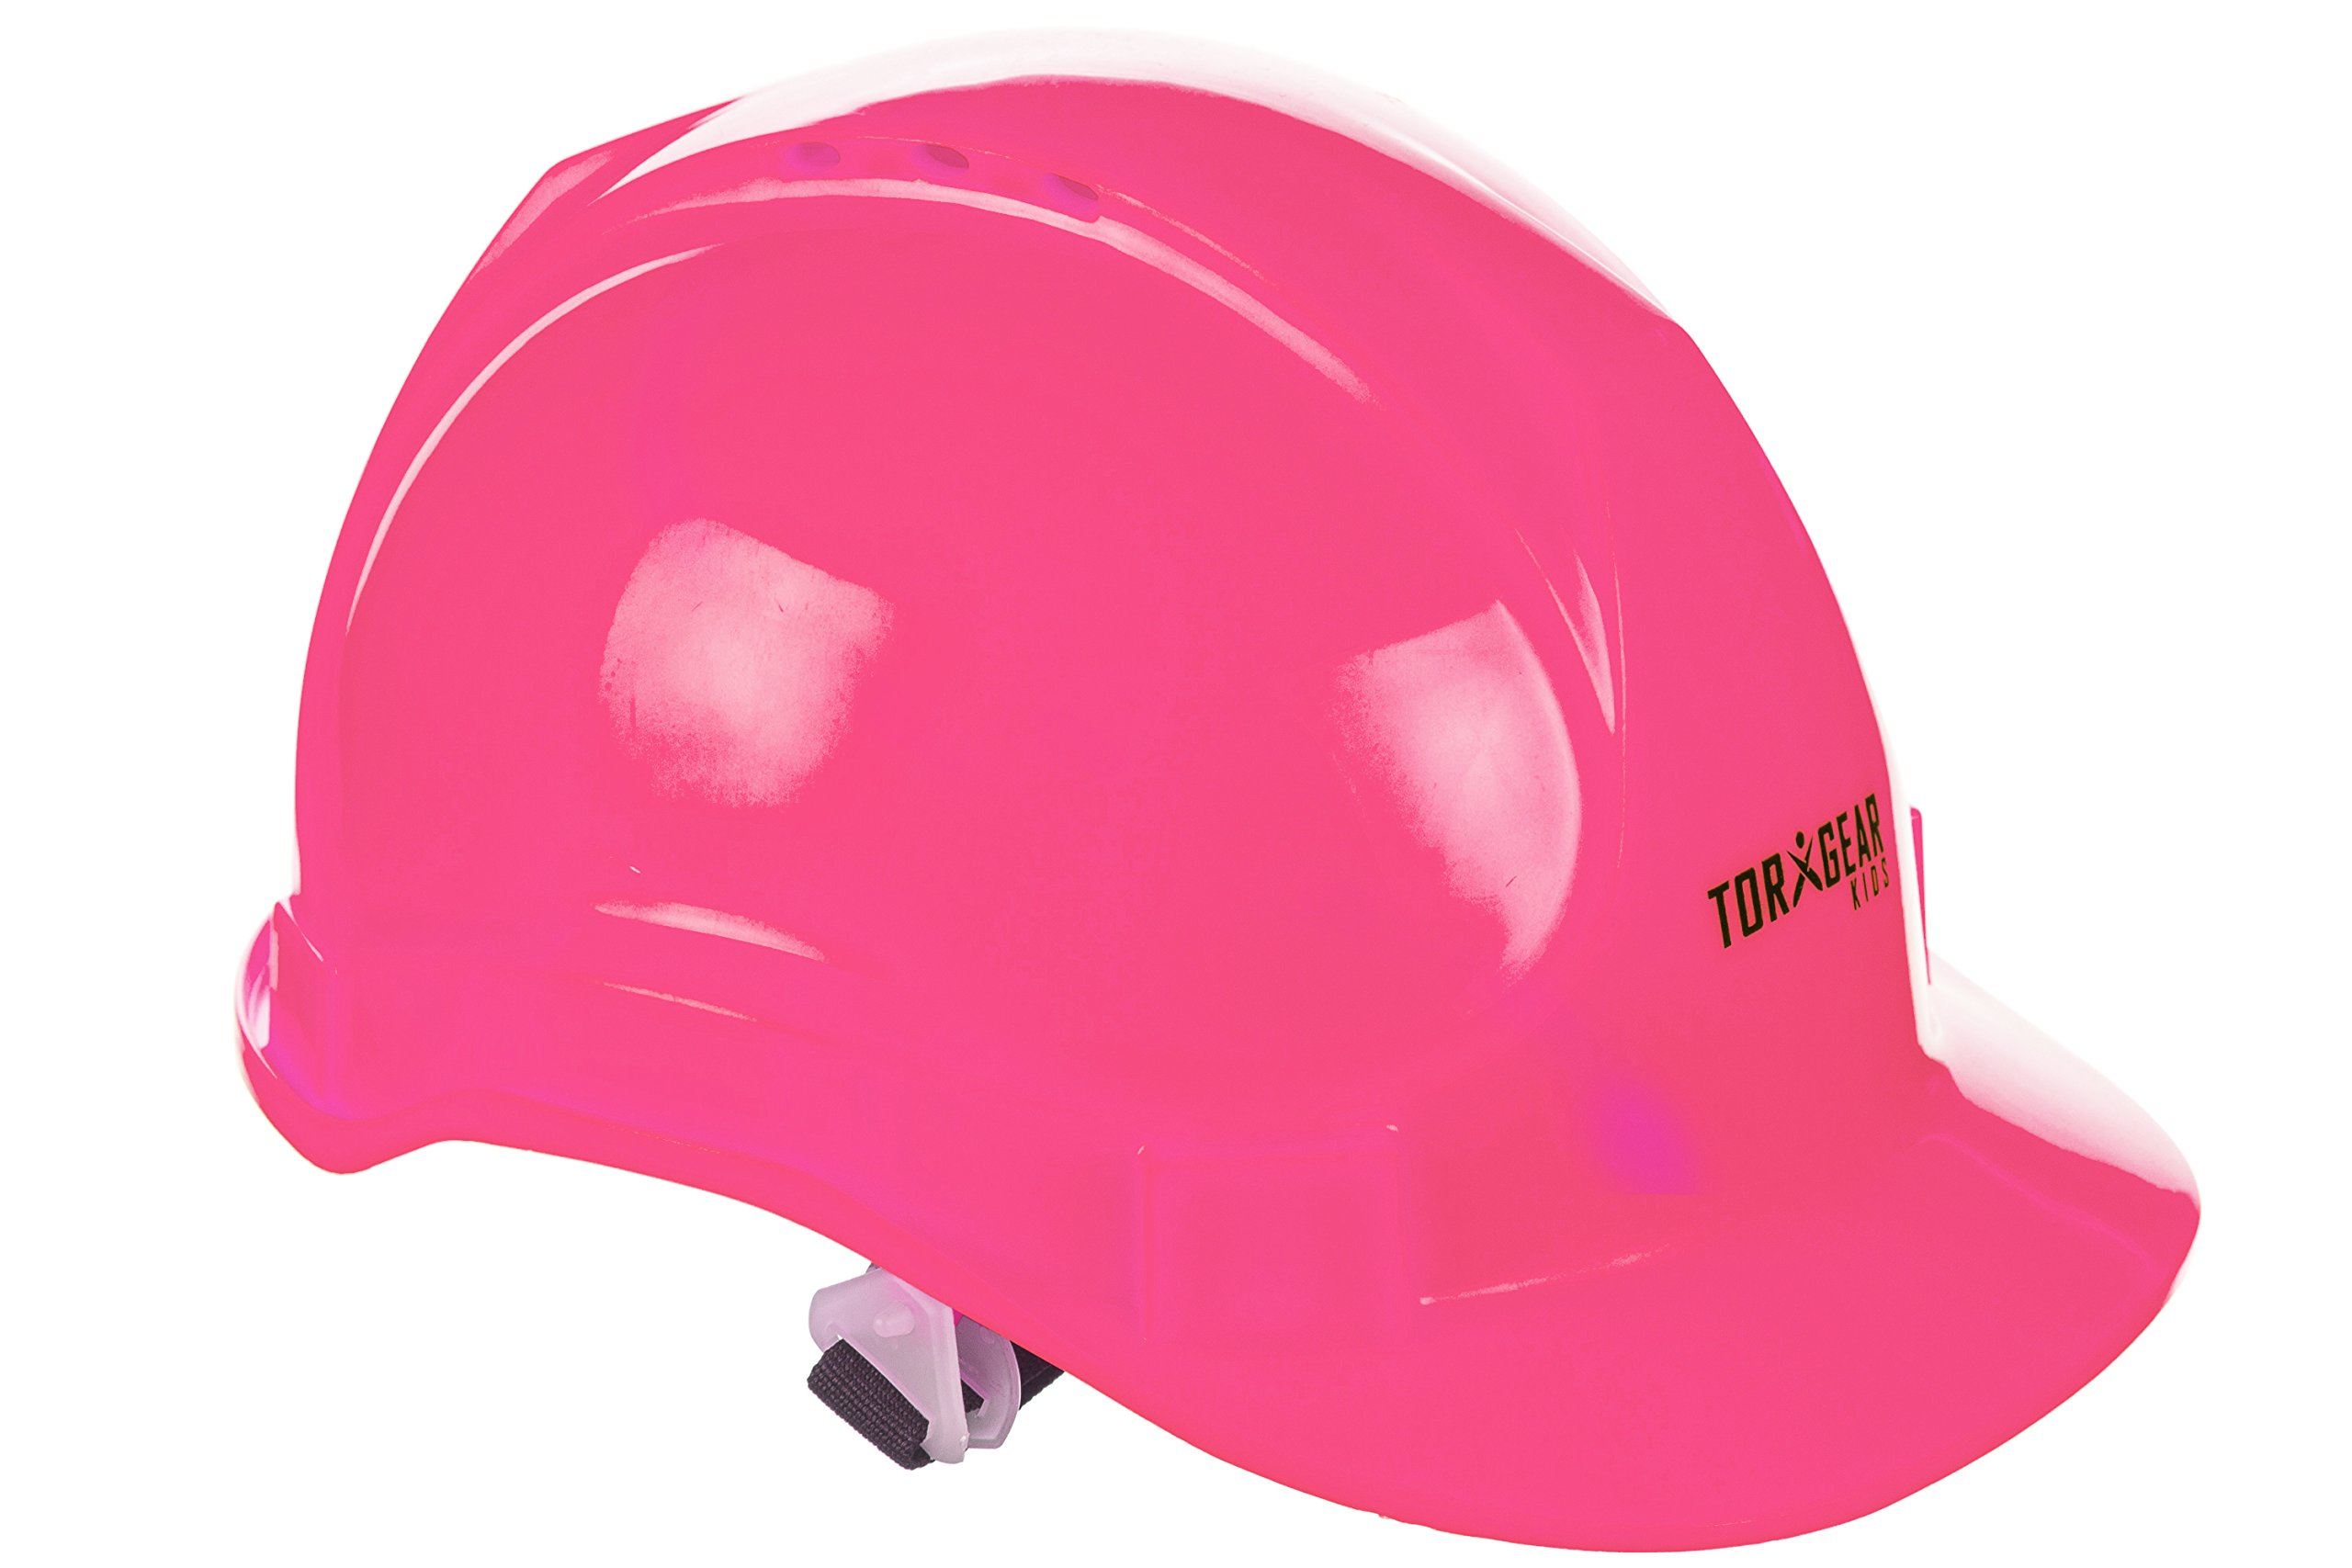 Child's Pink Hard Hat – Ages 2 to 6 – Kids Safety Construction Helmet Costume